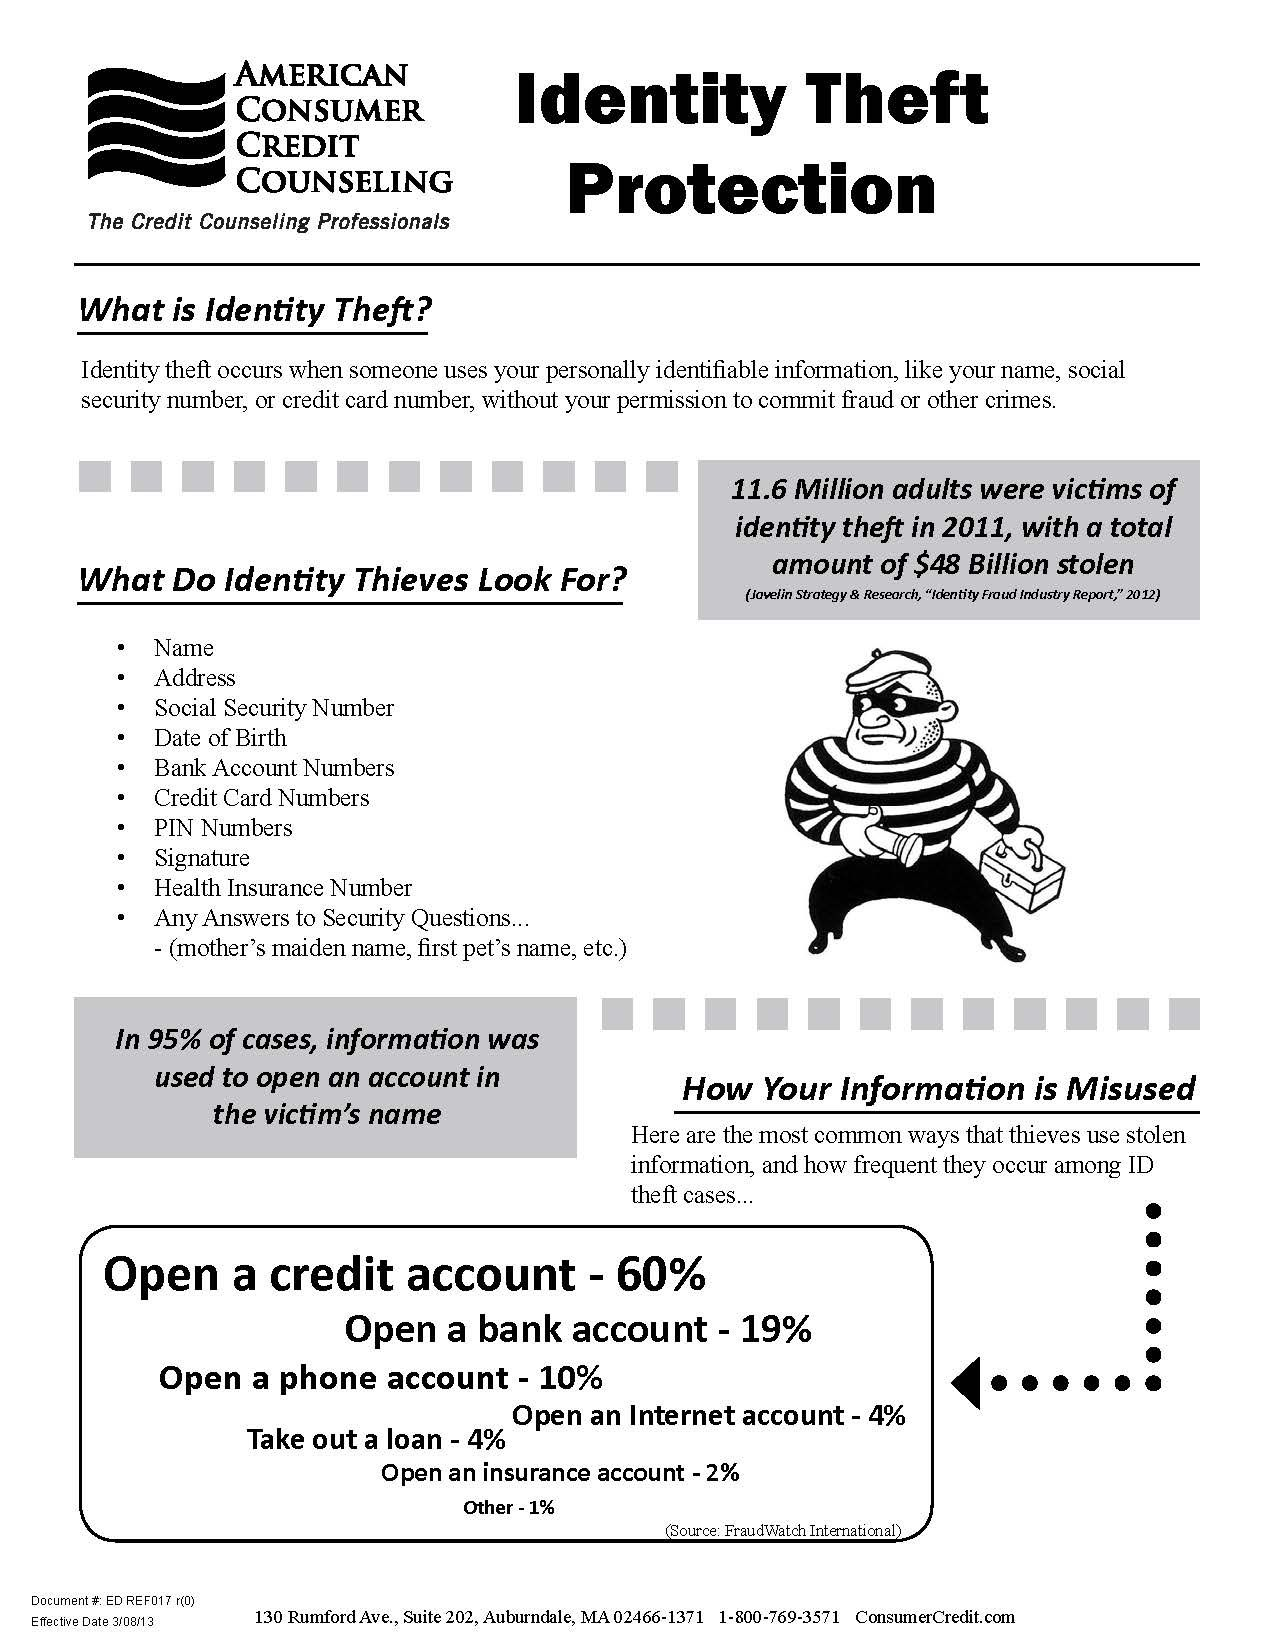 Everything You Need To Know About Identity Theft In One Handout